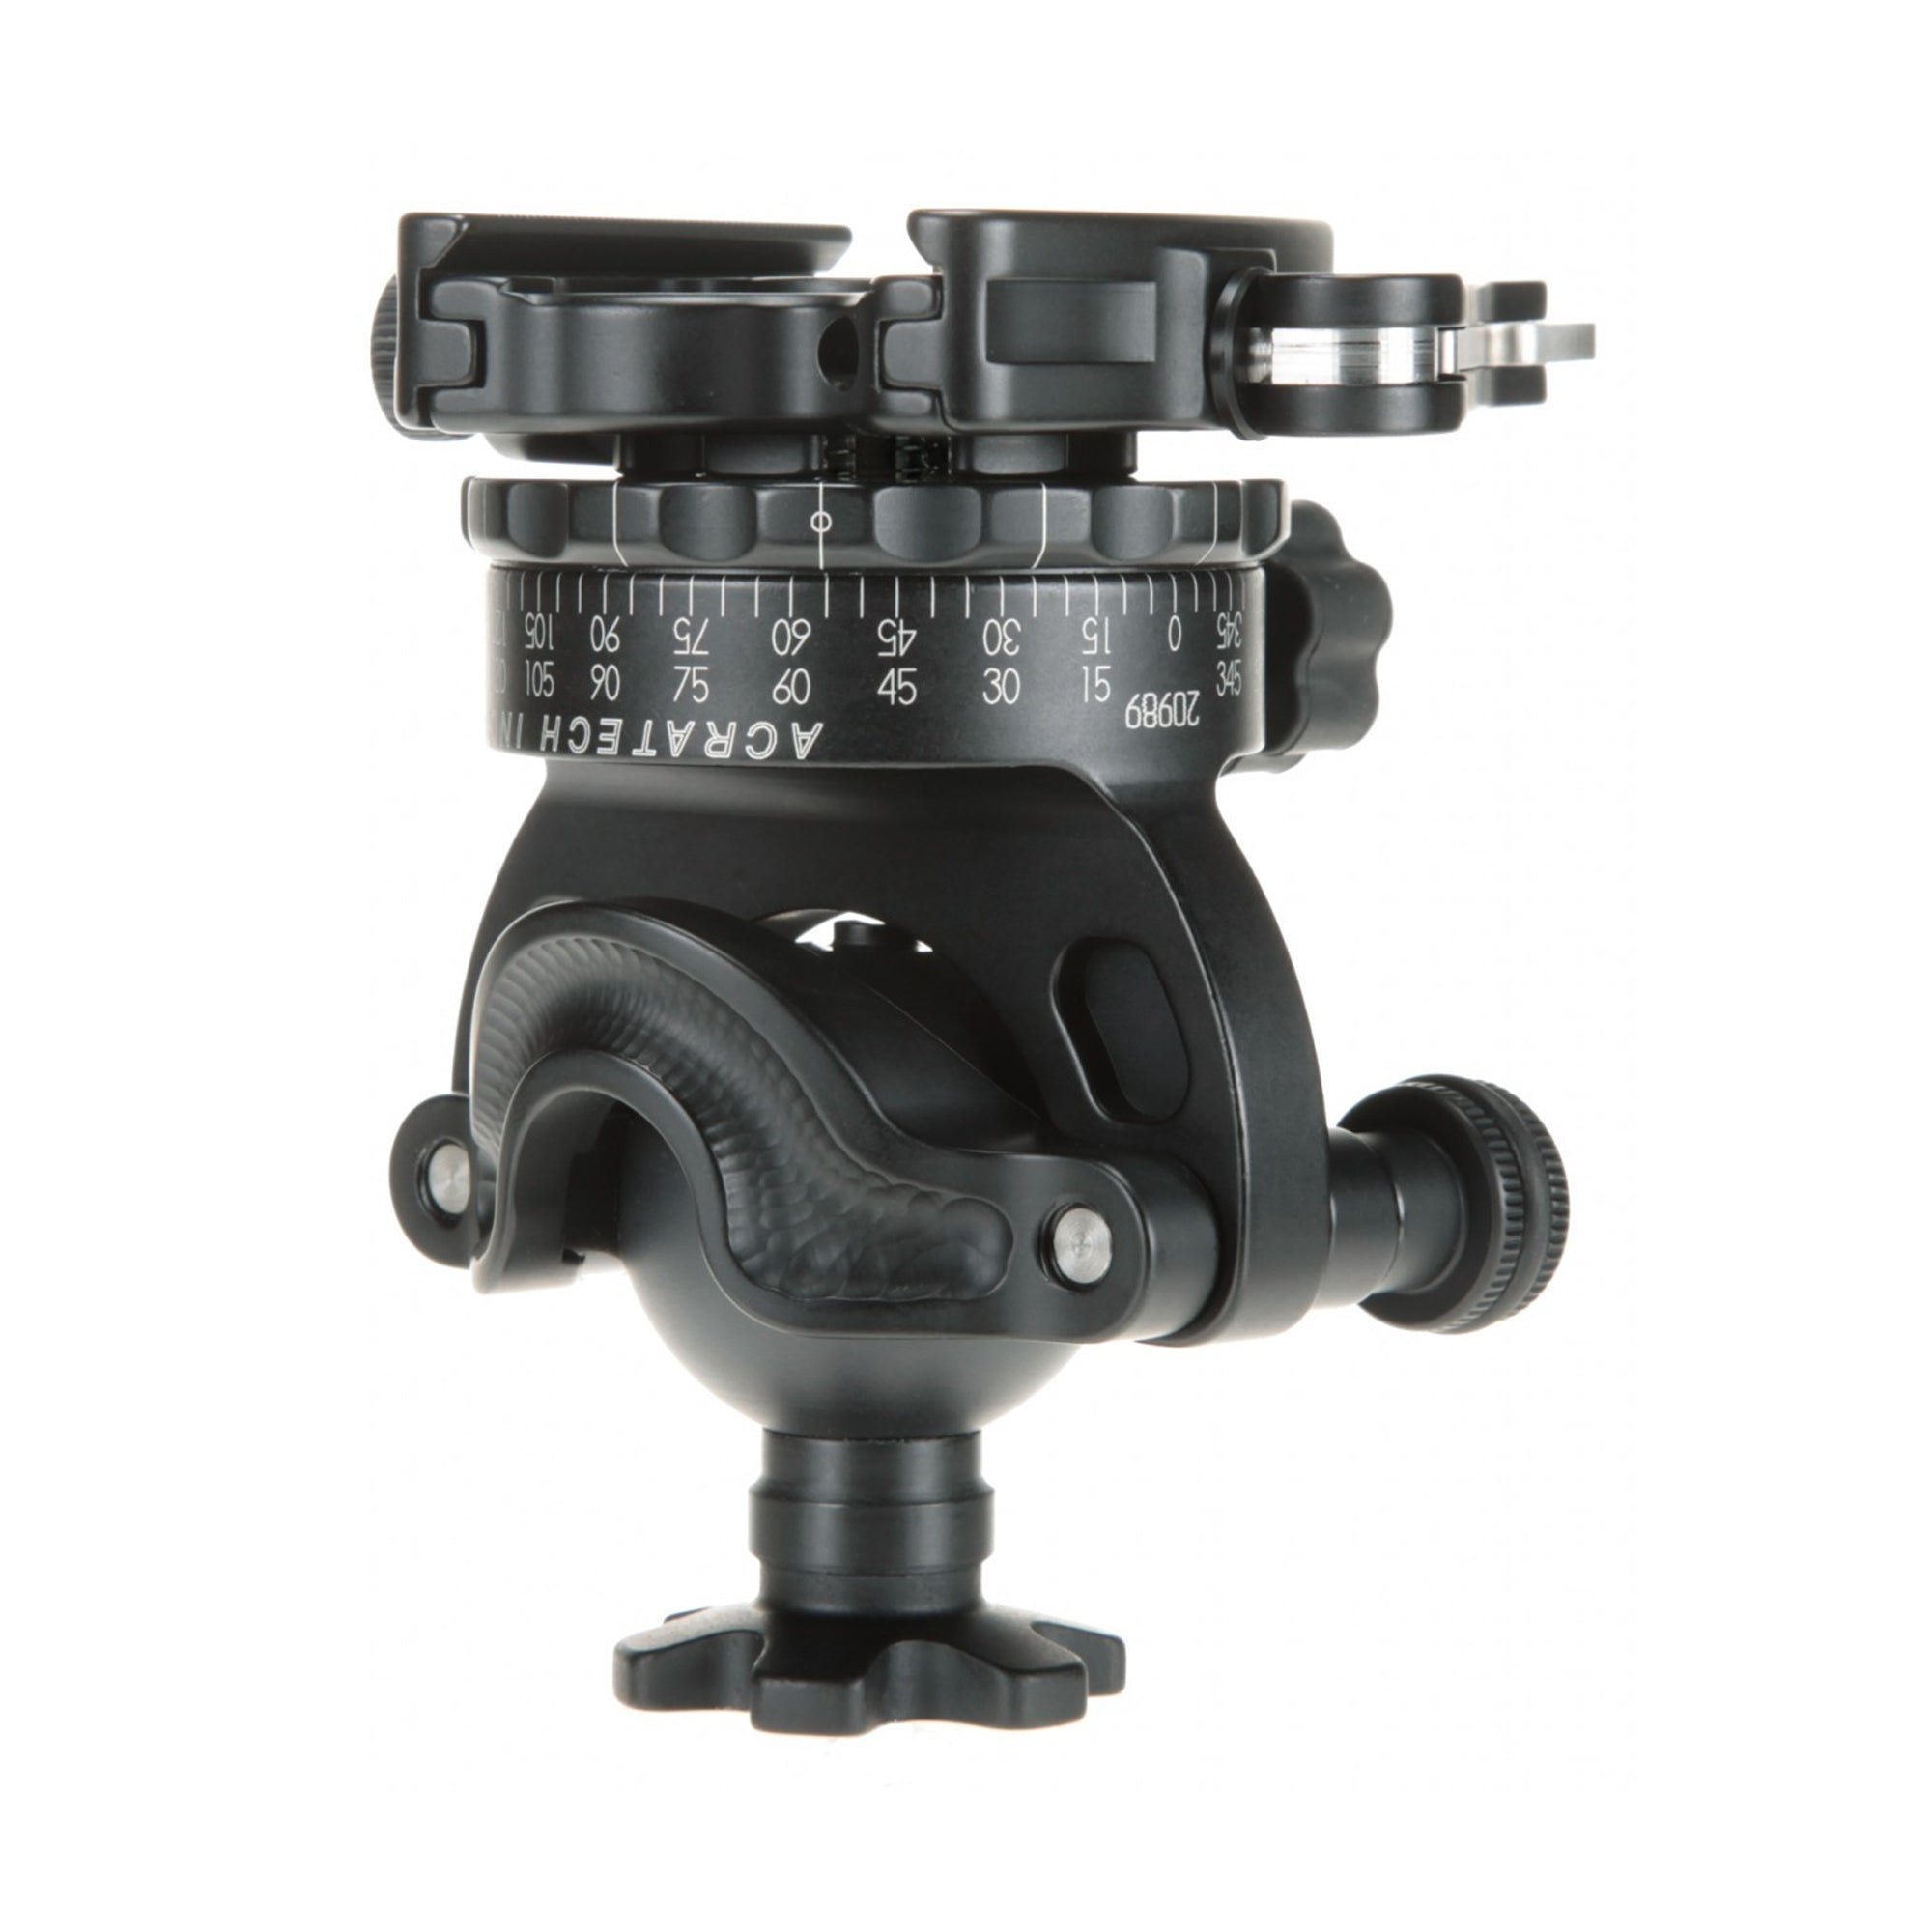 Acratech GP Ballhead with Quick Release Lever